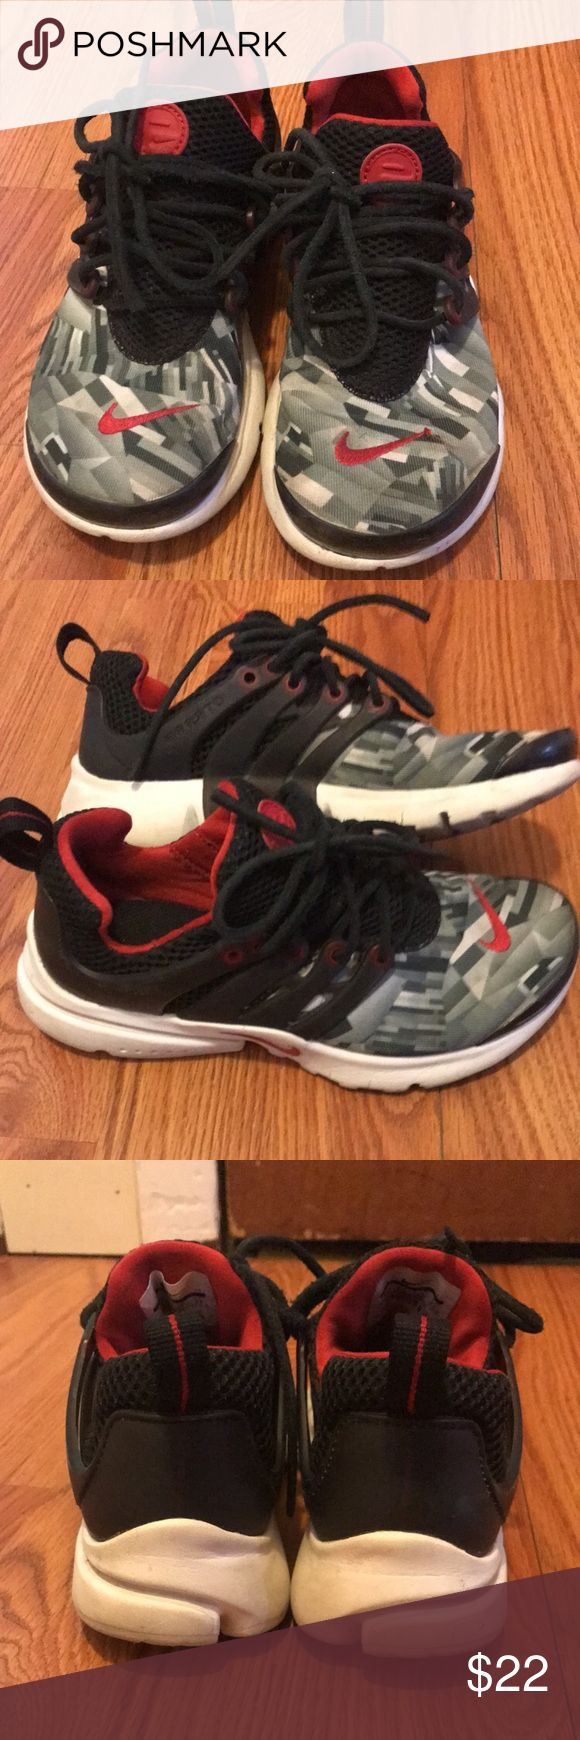 Boys Nike Presto sneakers Boys Nike Presto sneakers. Good condition just need to be washed. Nike Shoes Sneakers